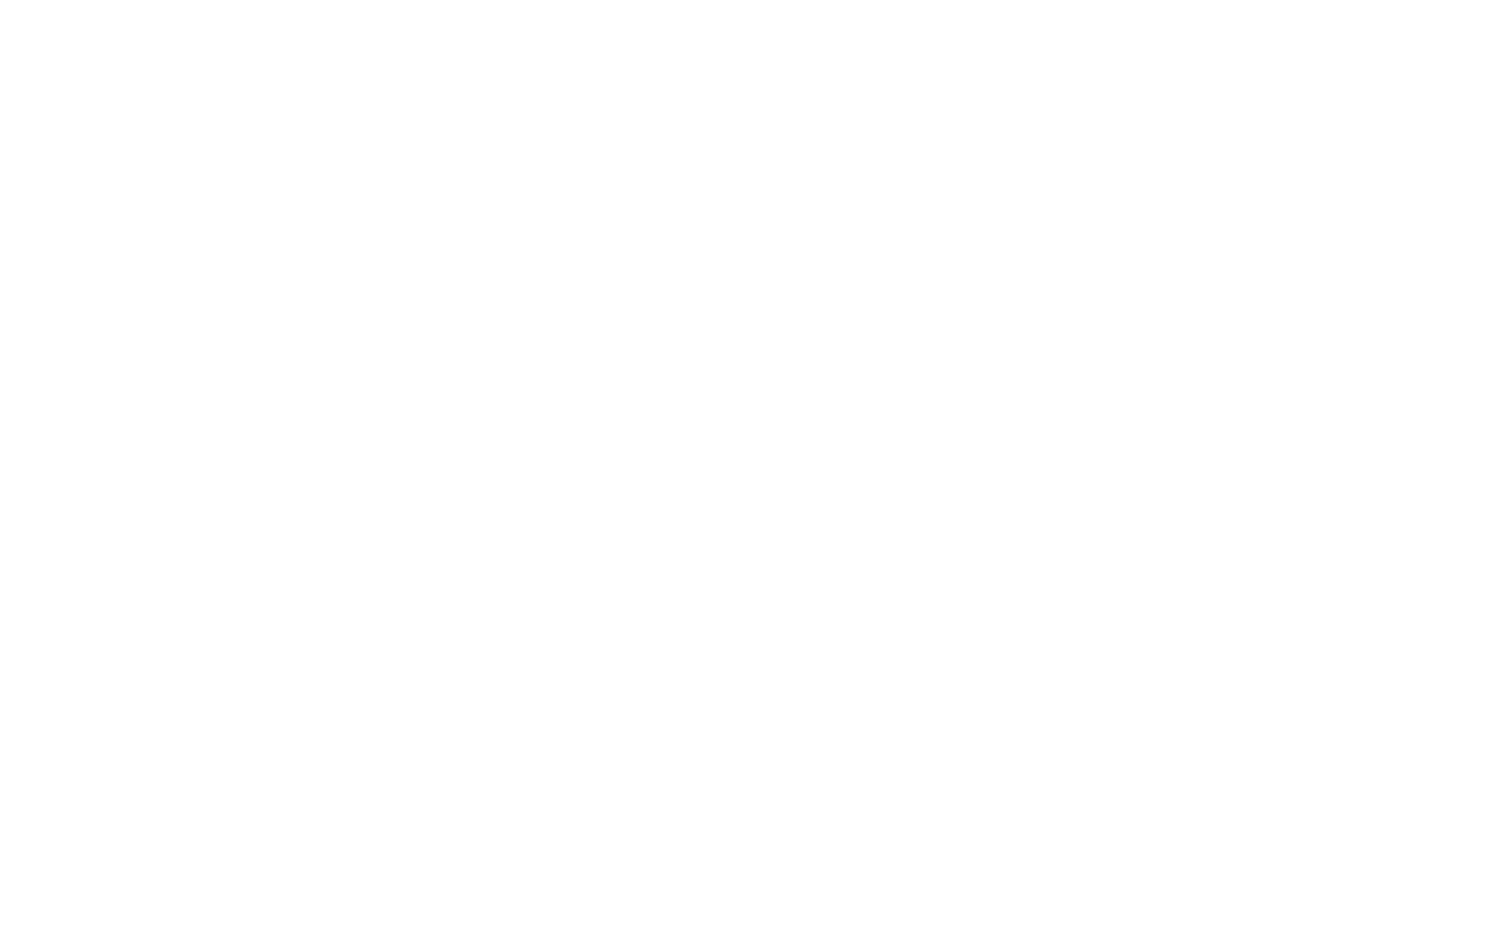 Above Deck Entertainment